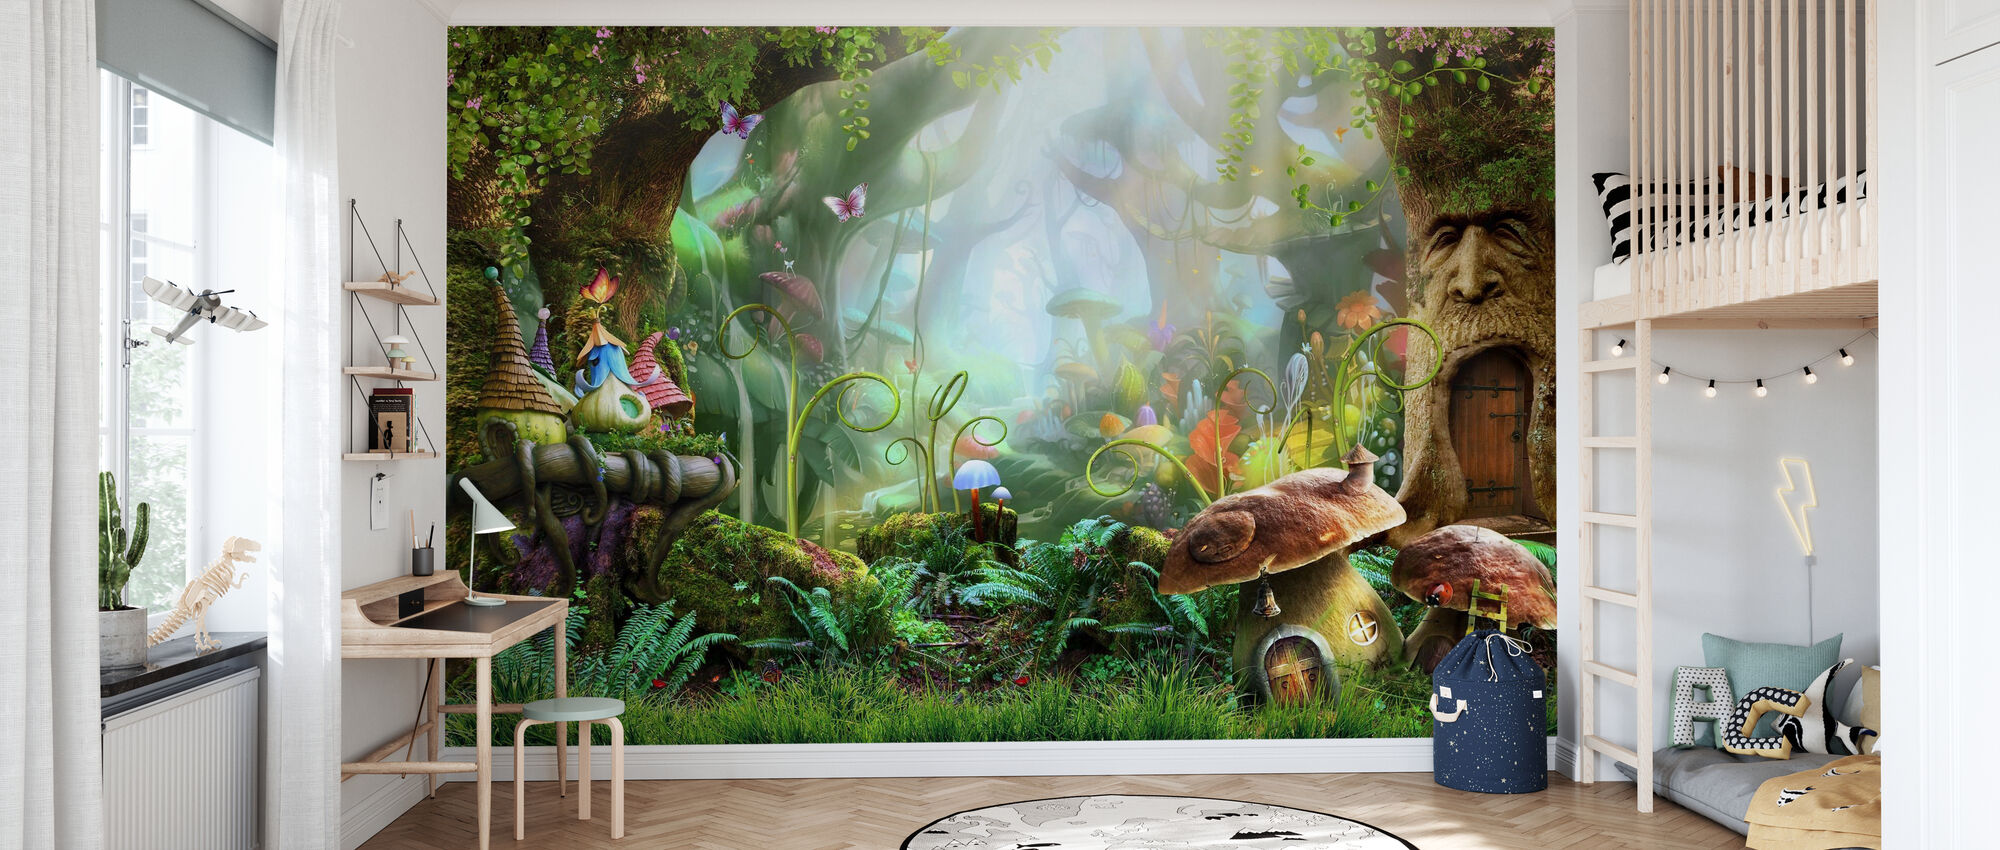 Enchanted Forest - Wallpaper - Kids Room